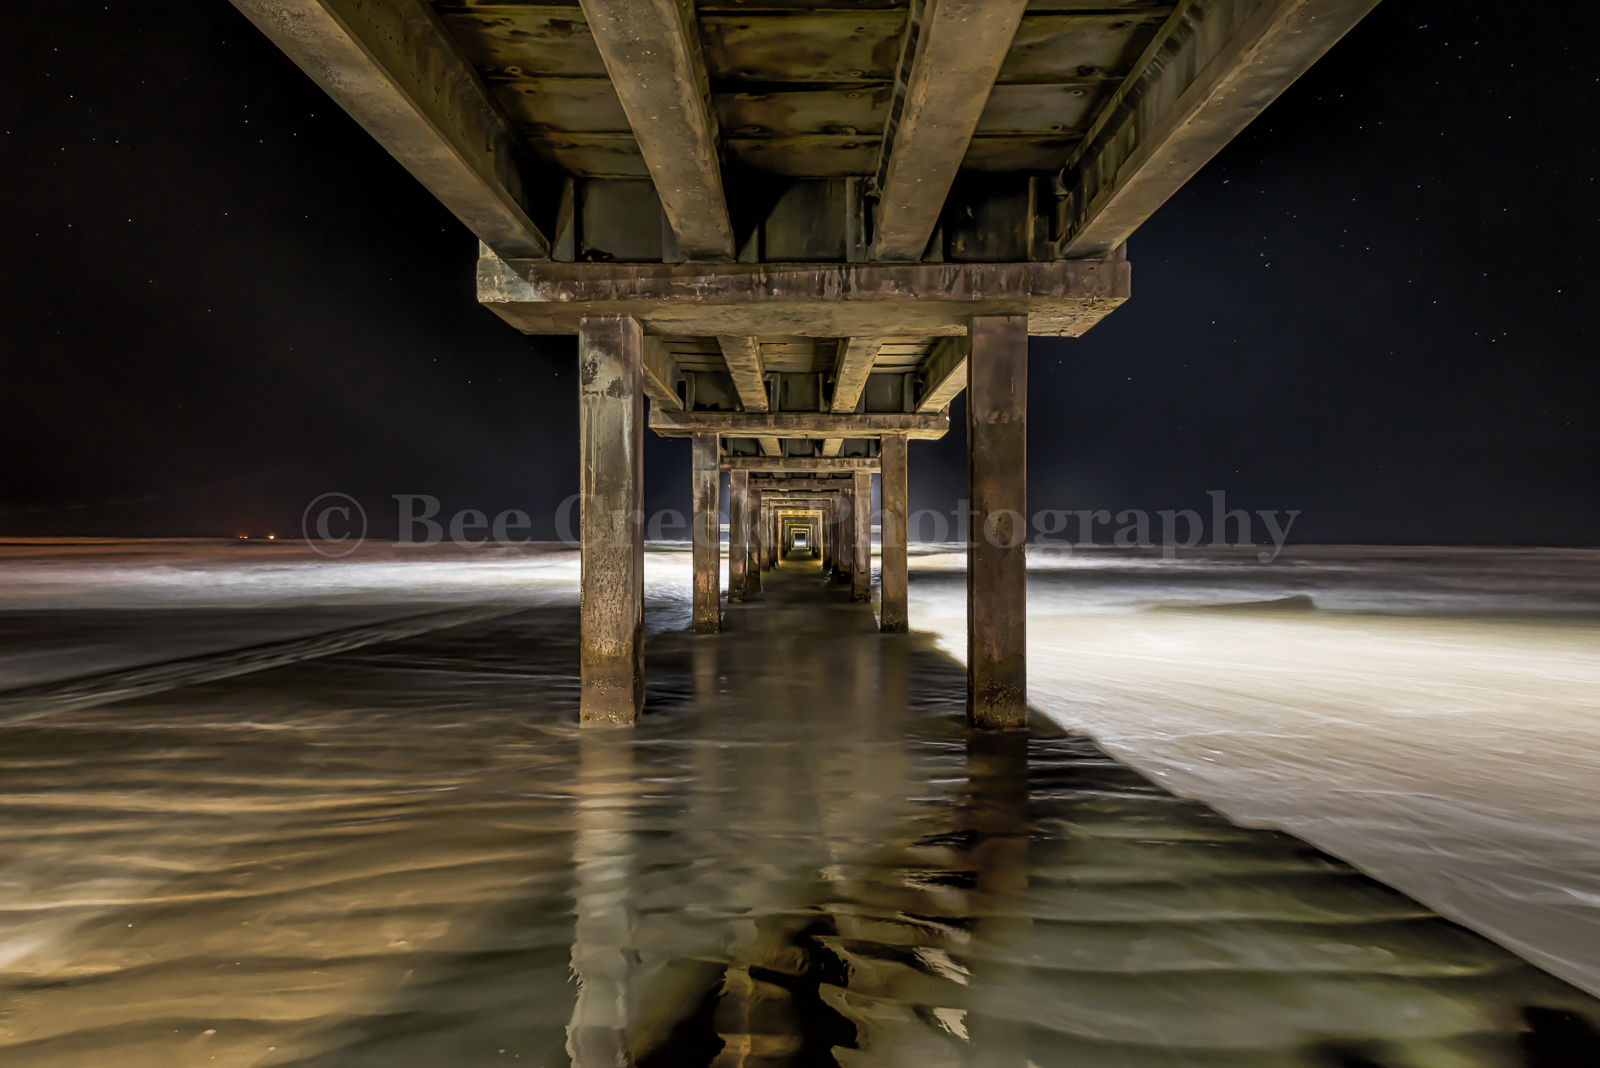 Caldwell pier, texas pier, texas piers, port A, port Aransas, Texas, coast, coatal, seascape, seashore, texas coastal, Texas coast, texas beach, sand, surf, tide, high tide, texas coastal landscape, b, photo